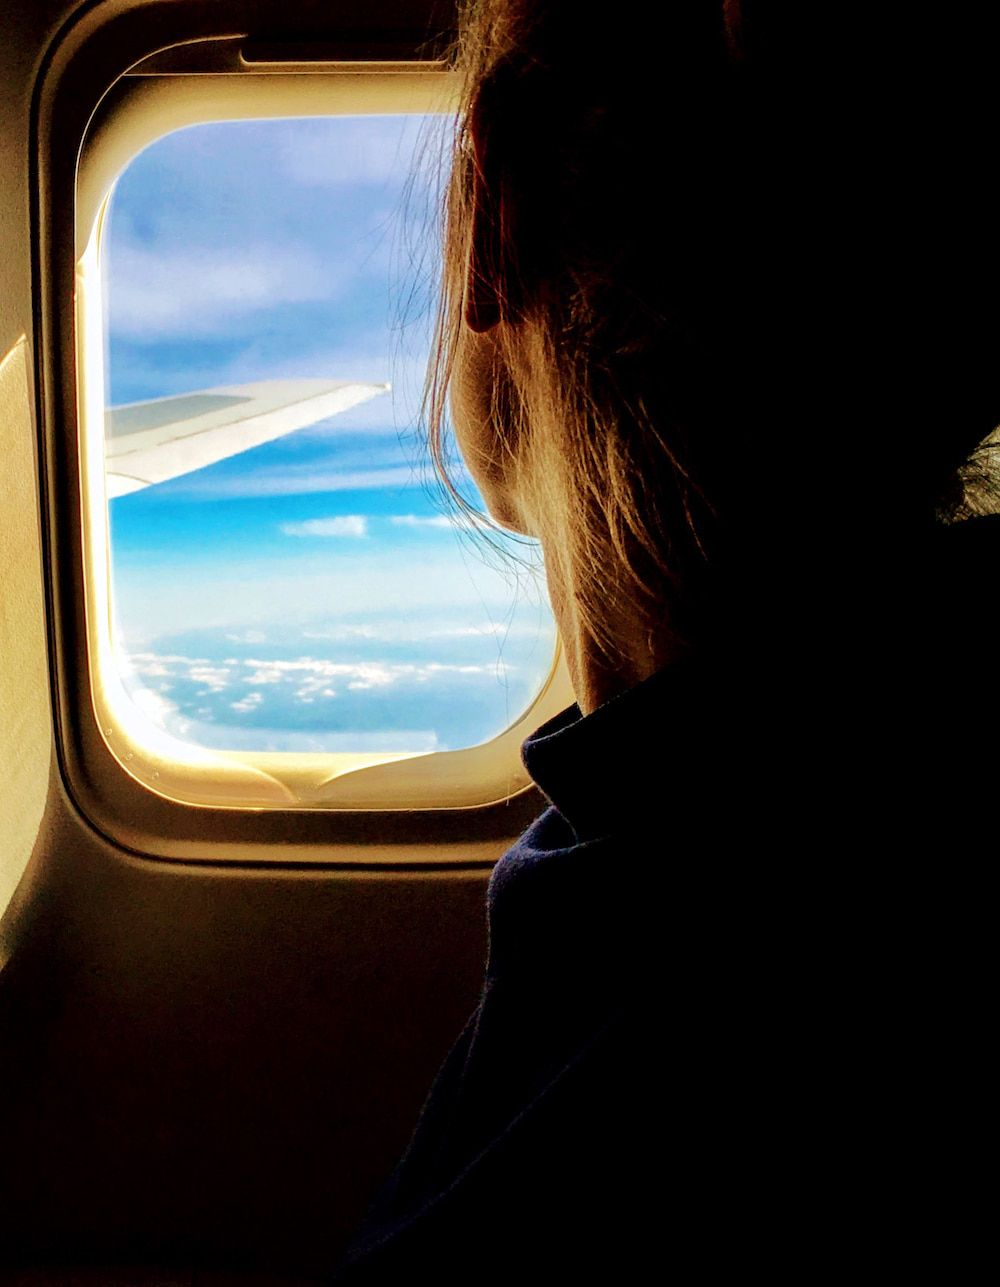 looking out of the window on a plane